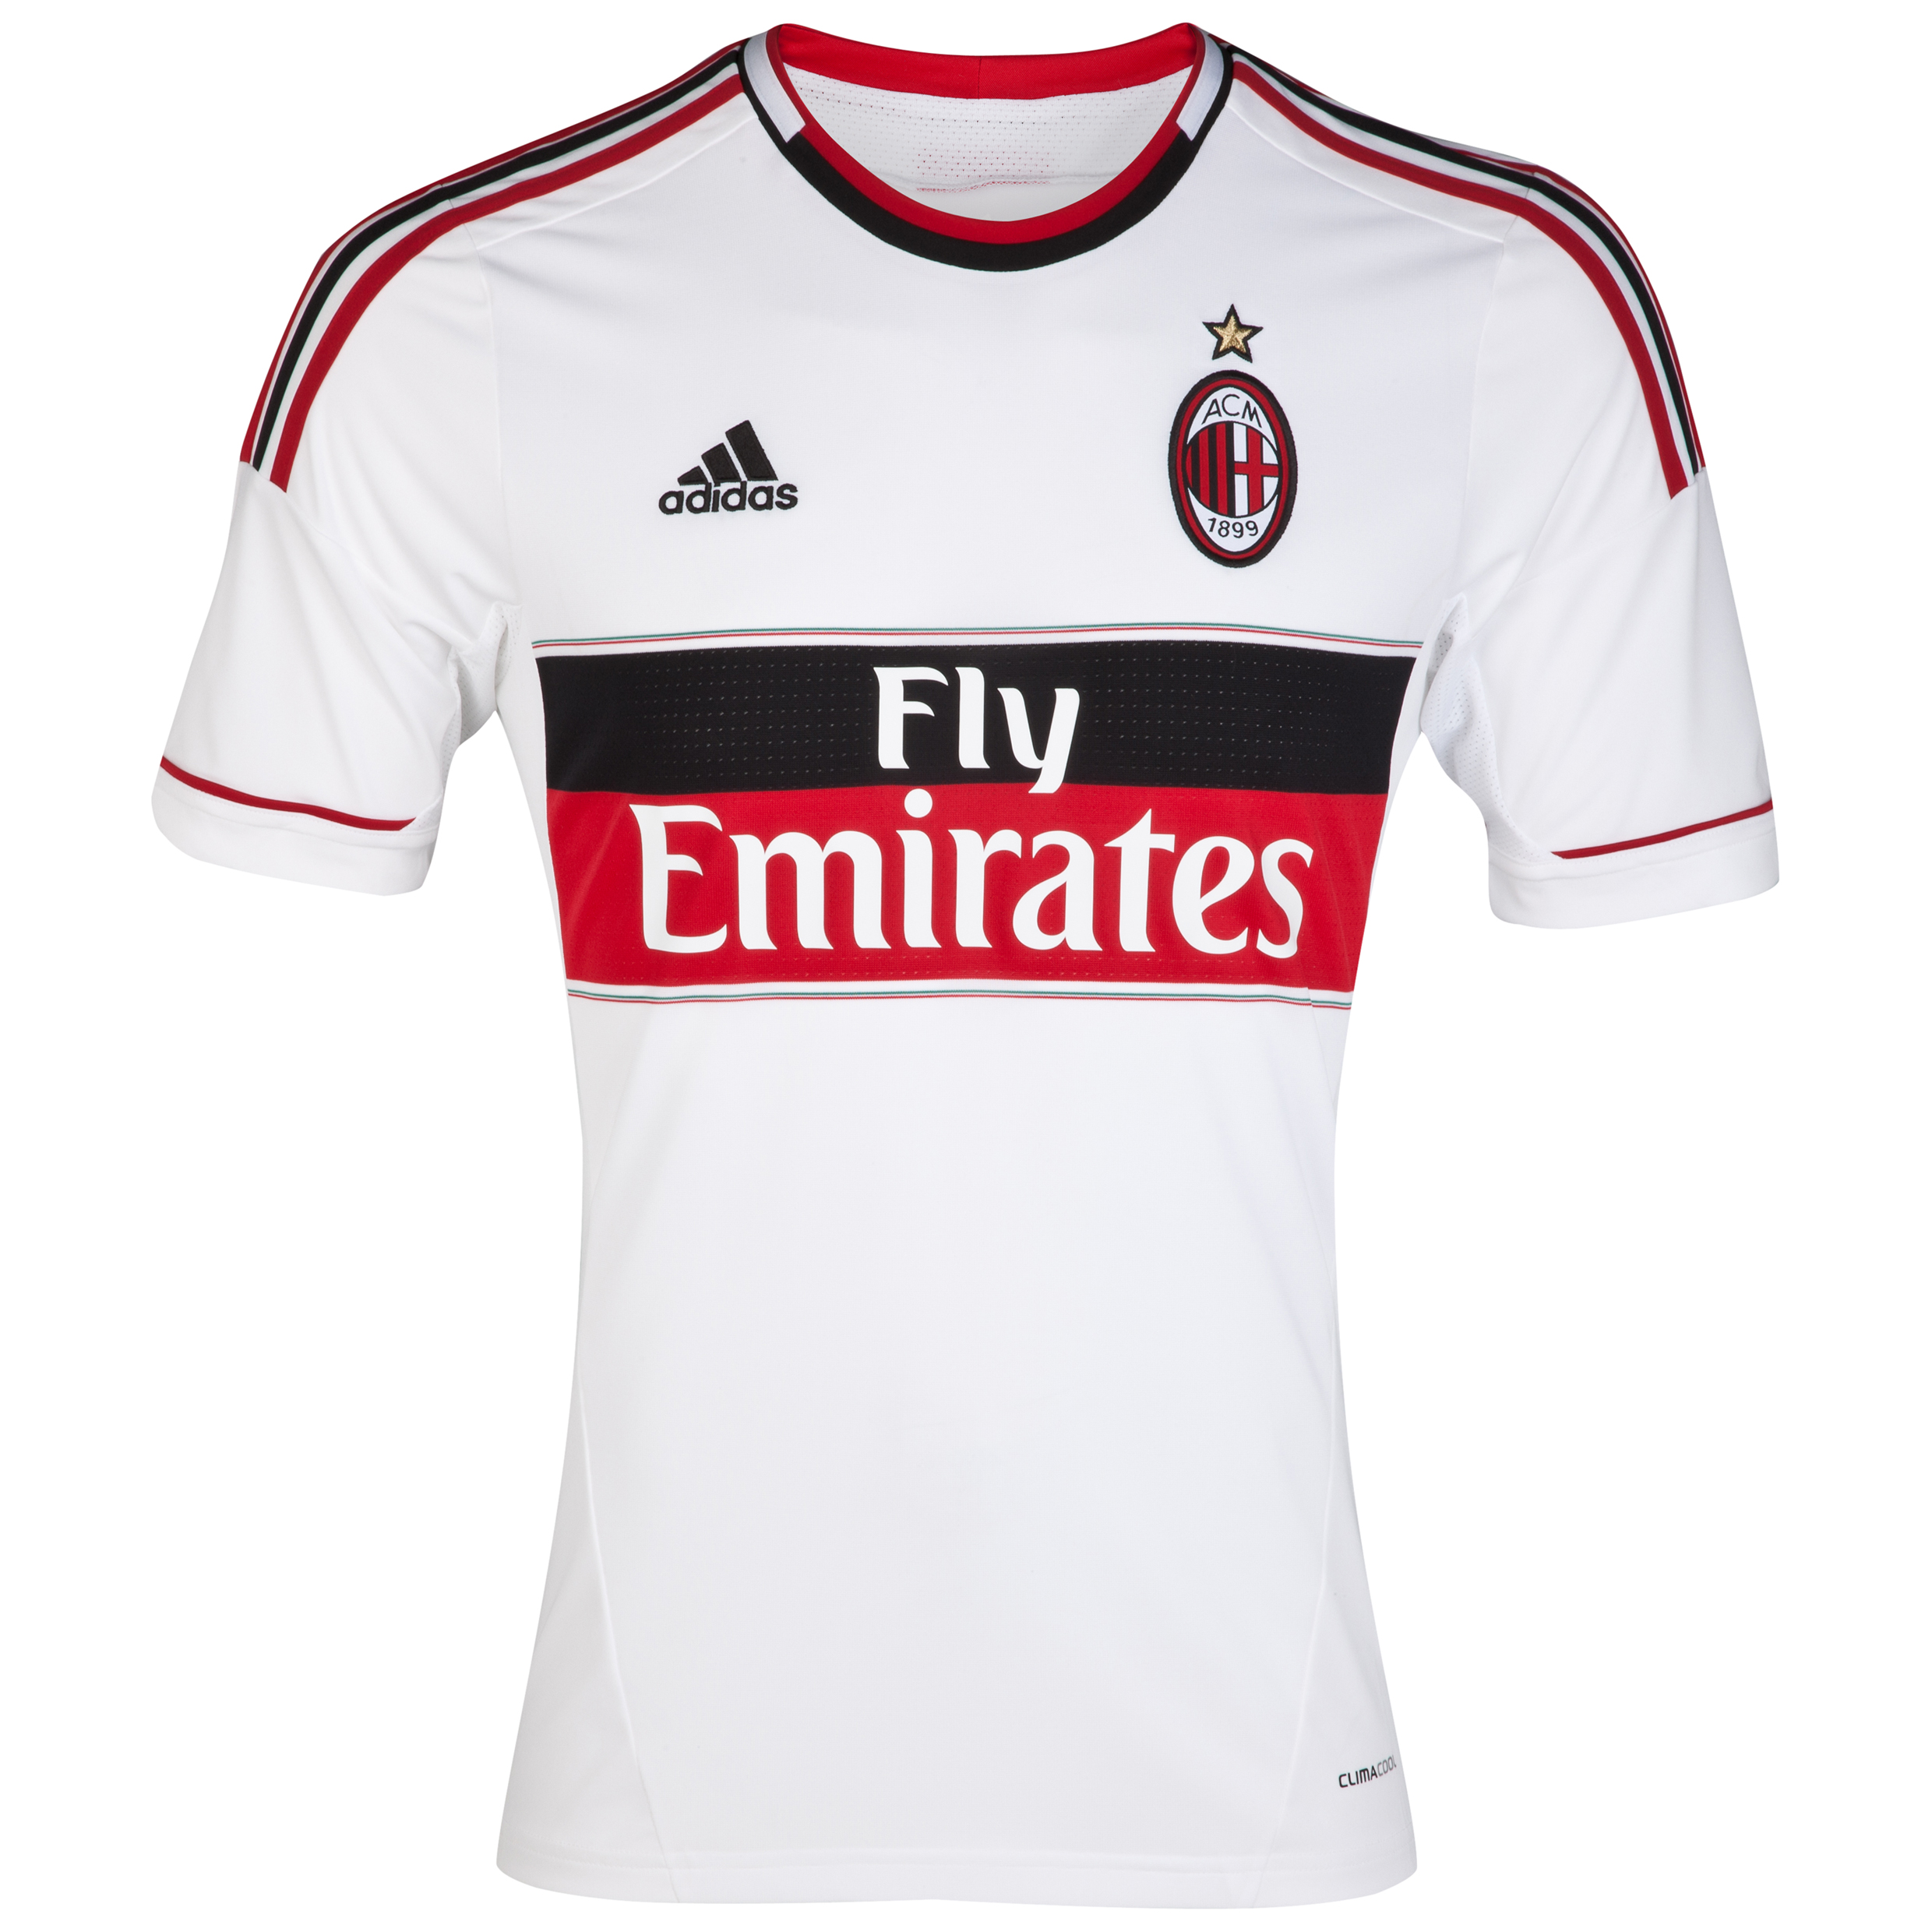 AC Milan Away Shirt 2012/13 Youths